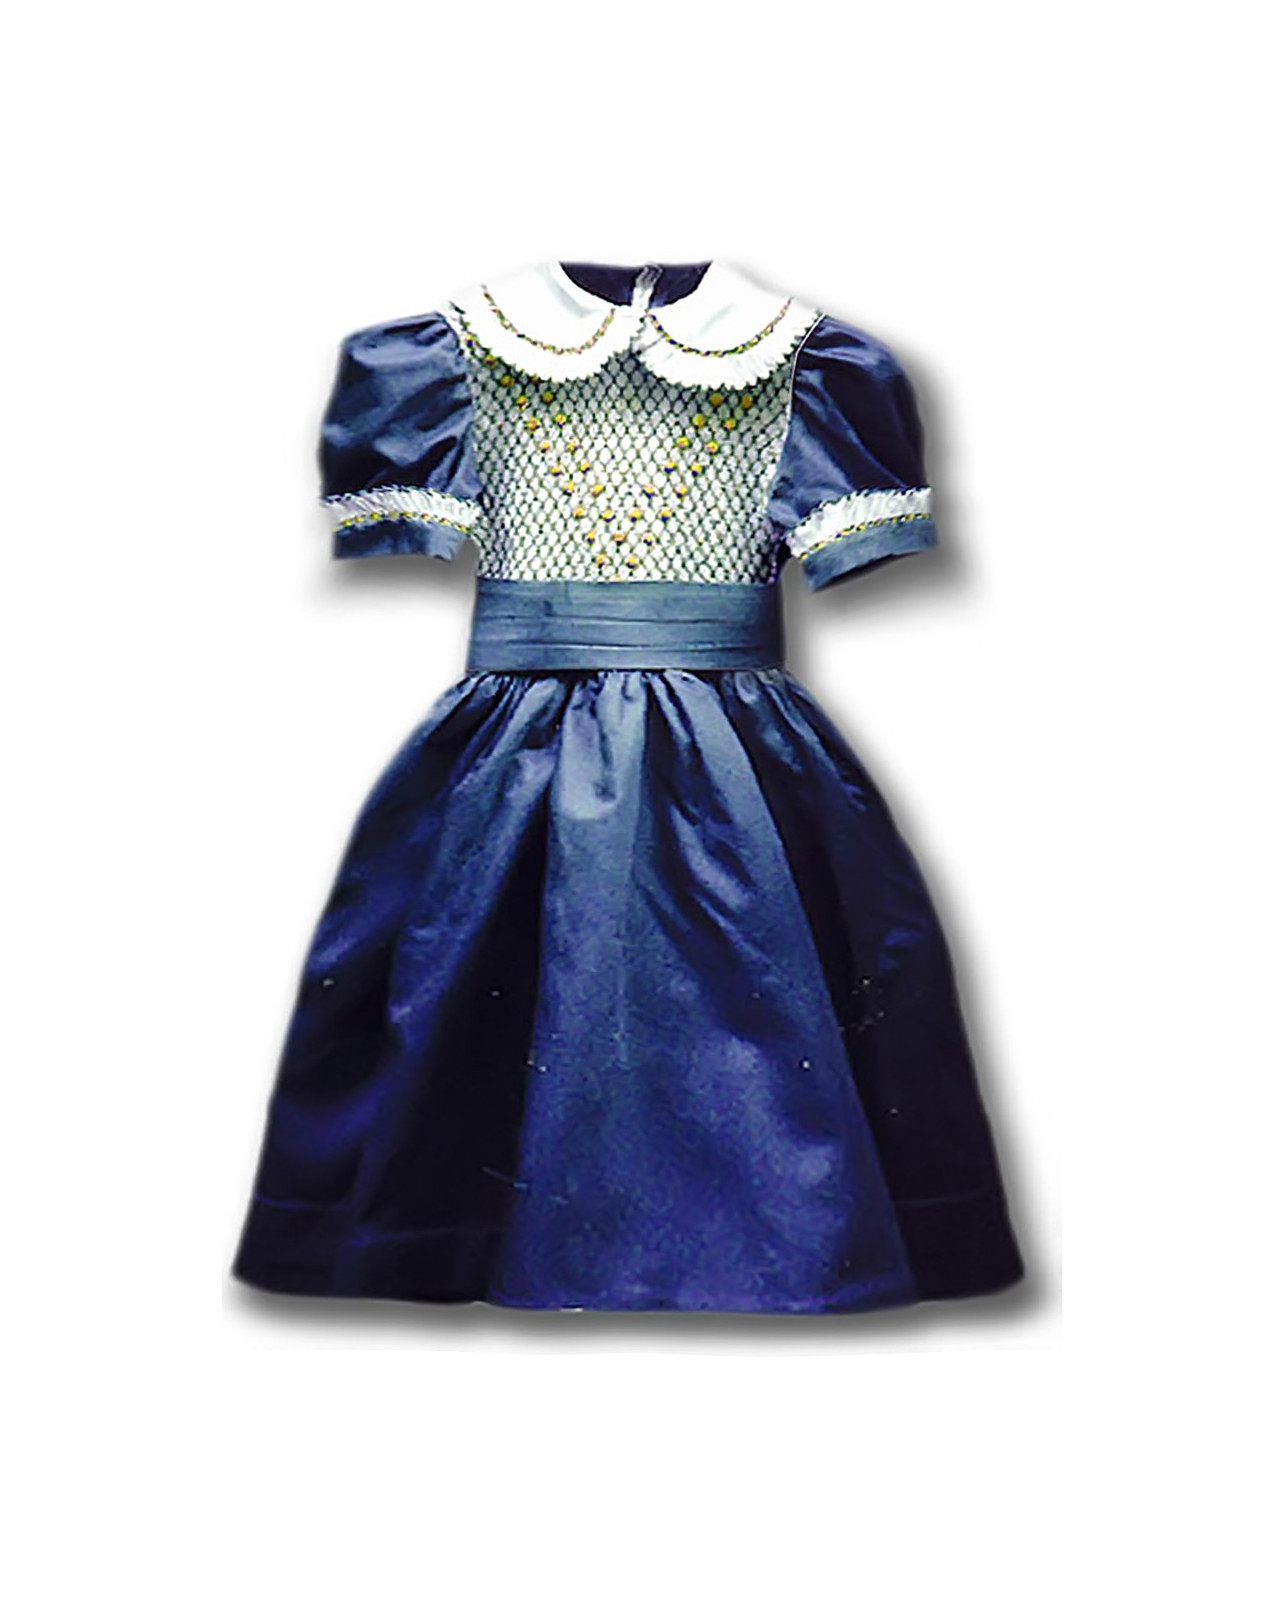 Very elegant dress smocked dress, with belt and bow in the back ,Diana